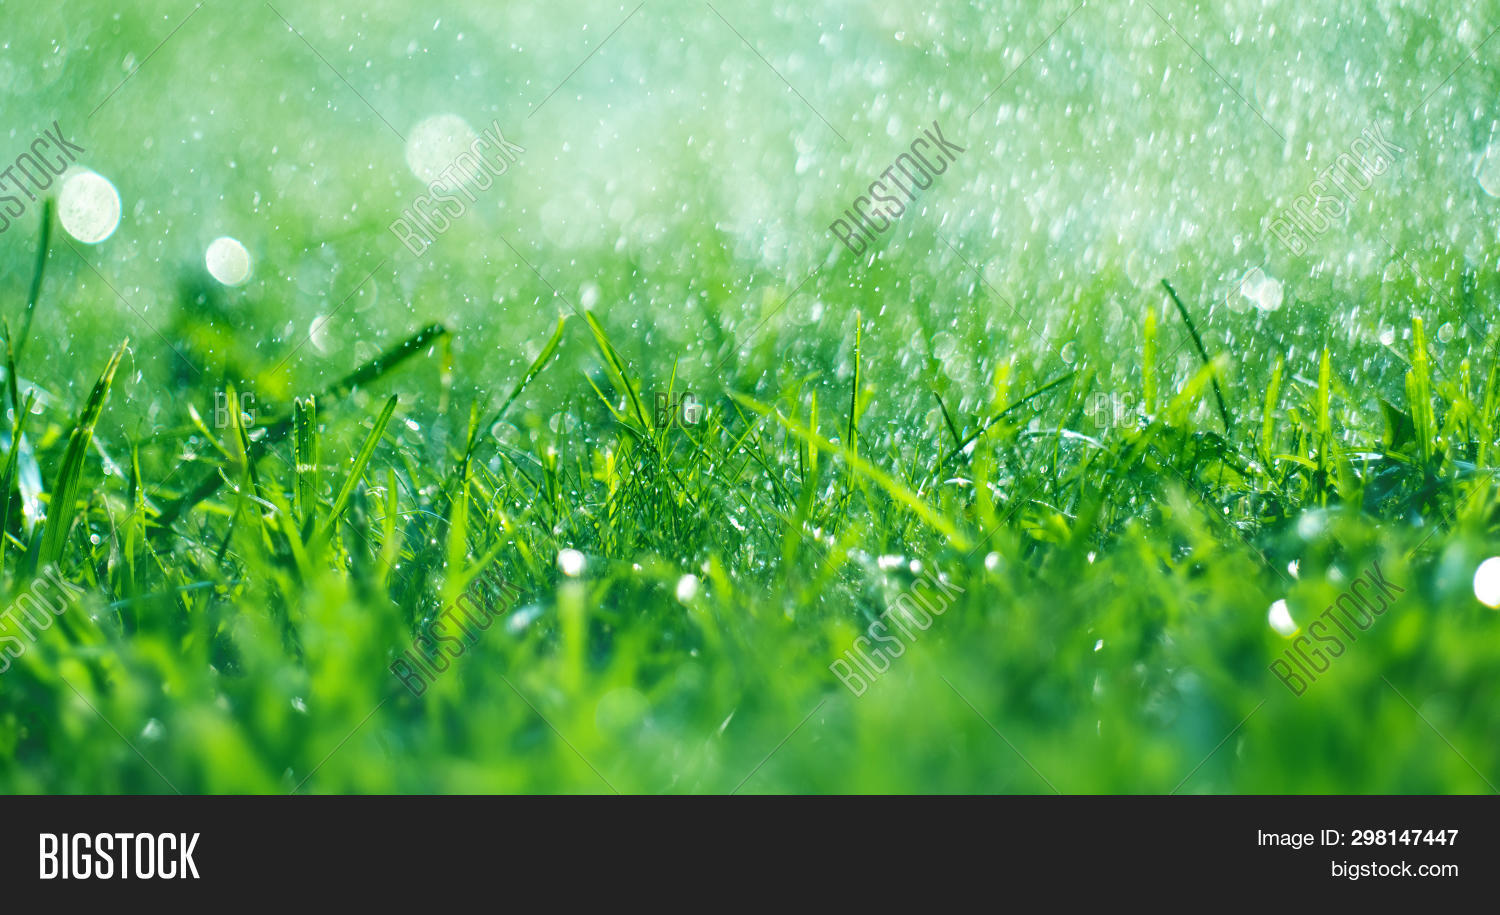 Grass with rain drops. Watering lawn. Rain. Blurred Grass Background With Water Drops closeup. Natur